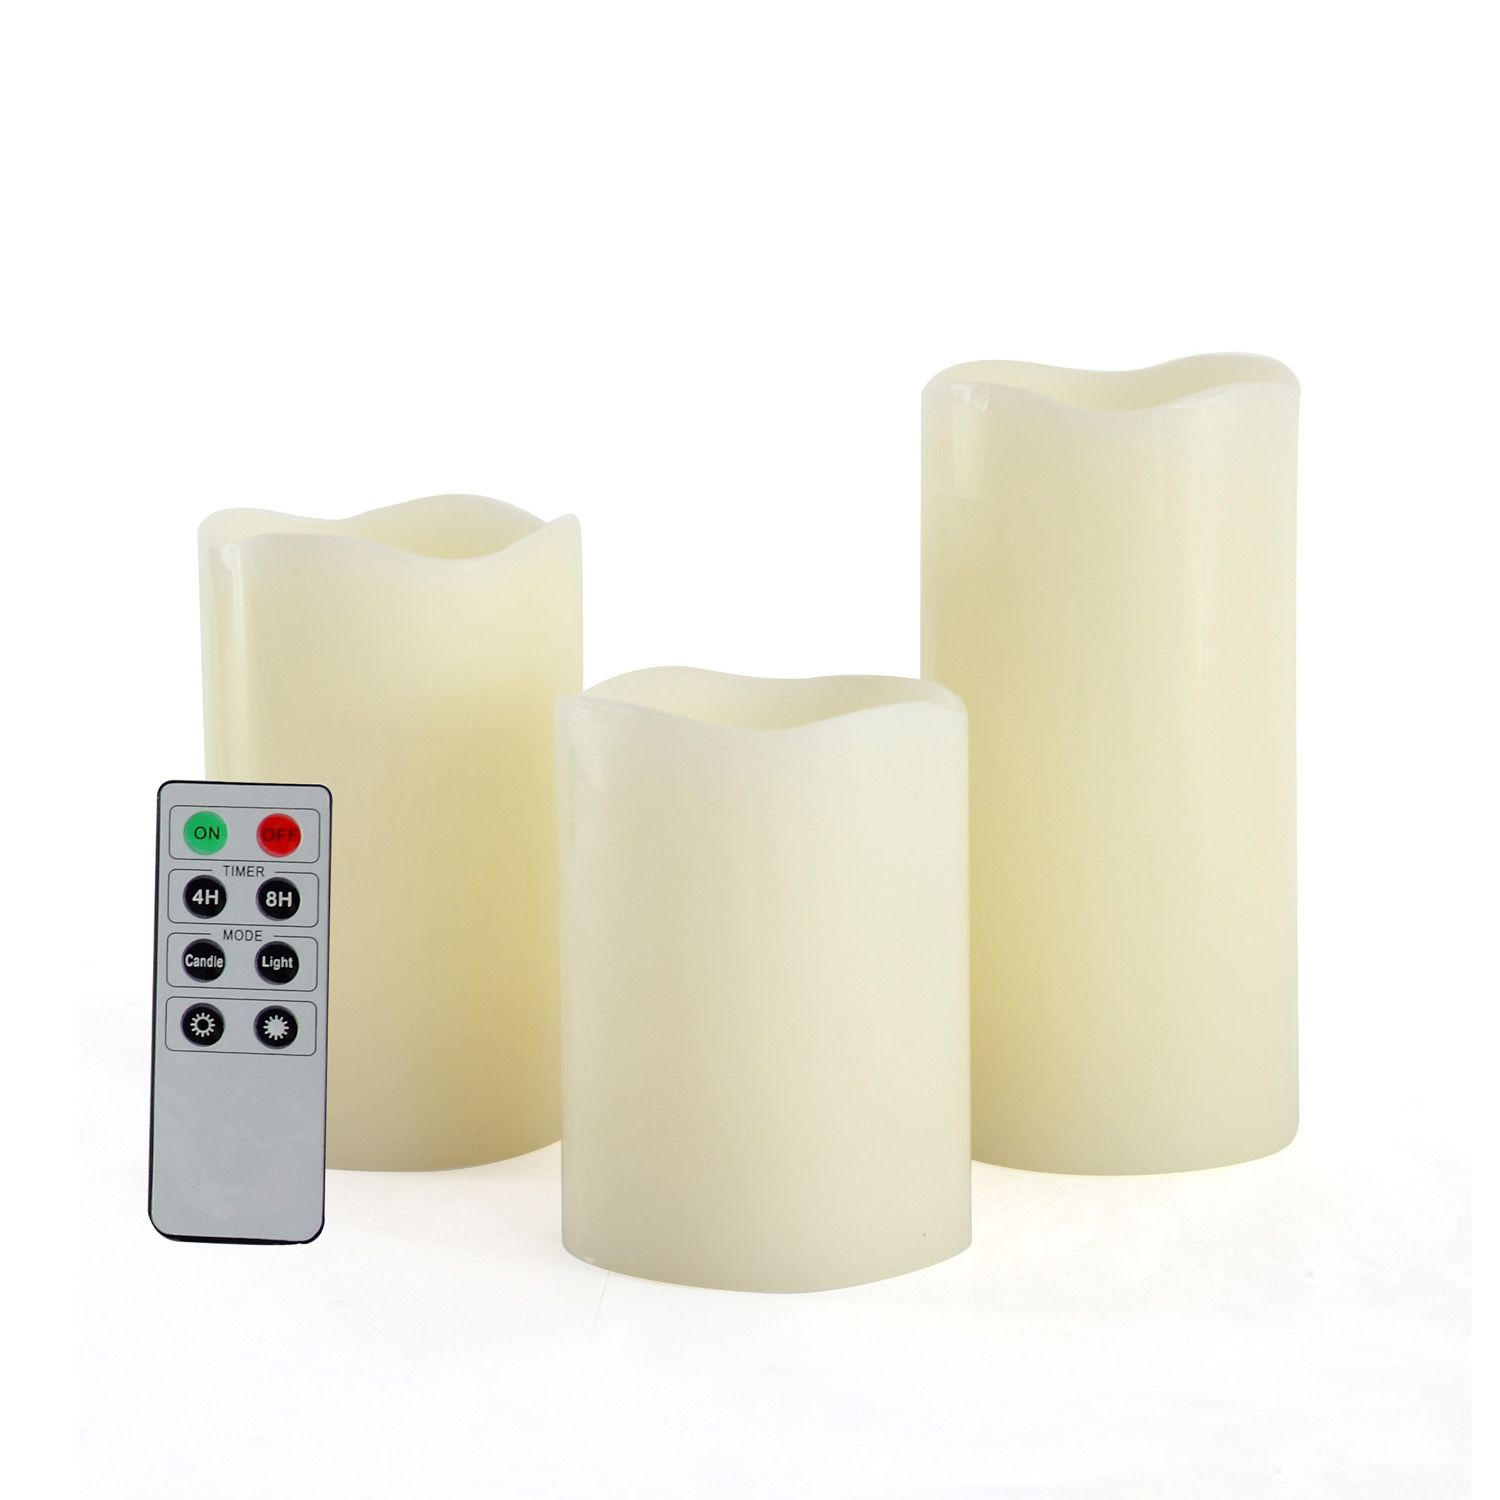 Candle Choice Set of 3 Real Wax Flameless Candles with Remote Control Timer- Light Ivory